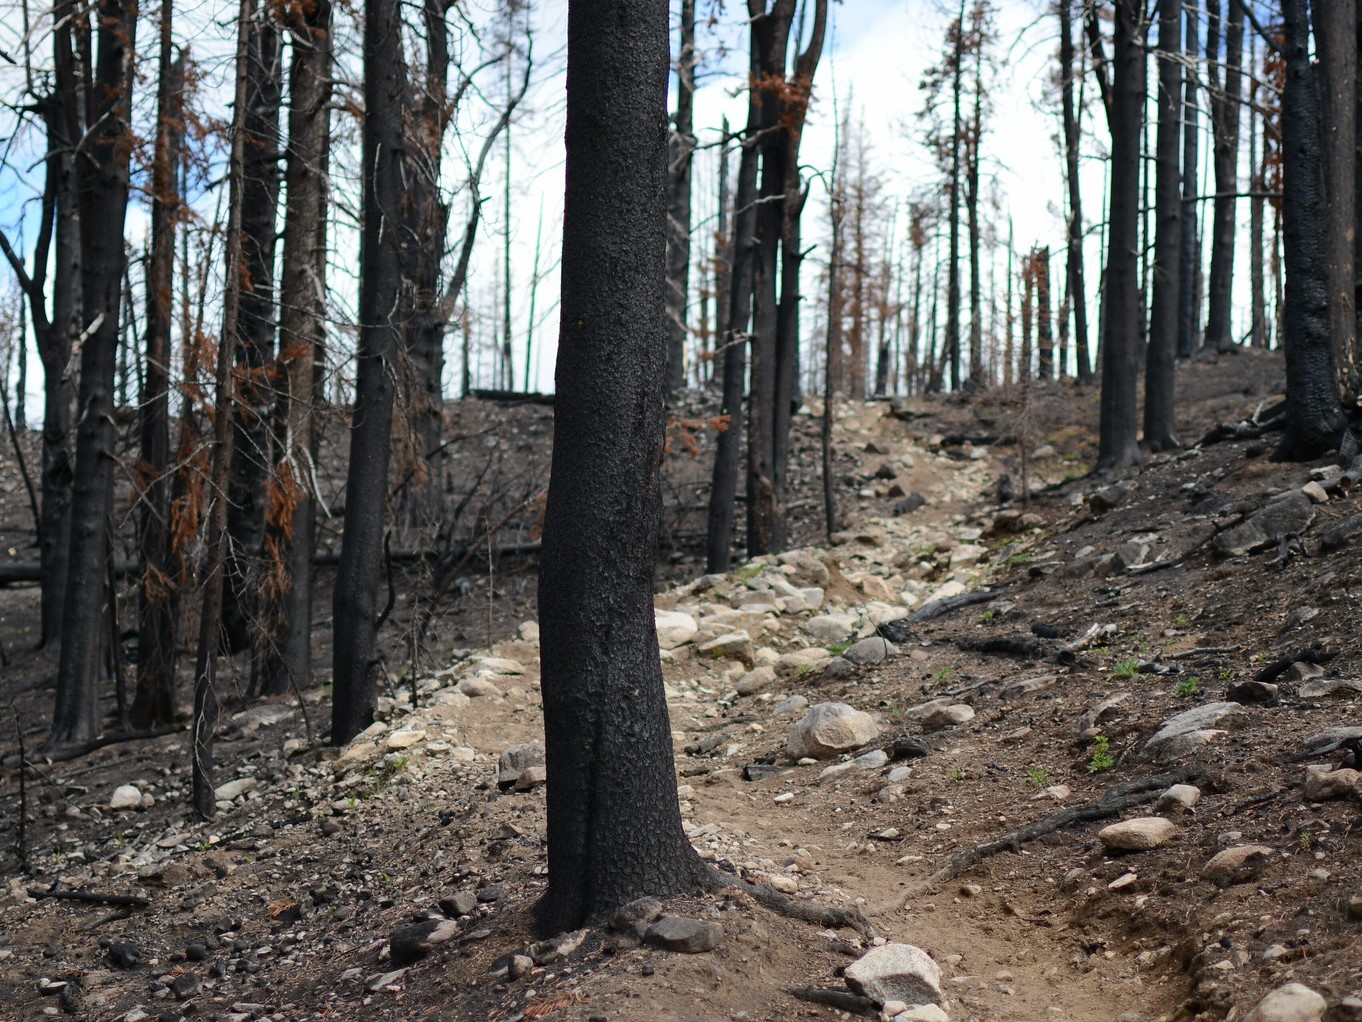 A rocky trail winds through a recently burned forest.